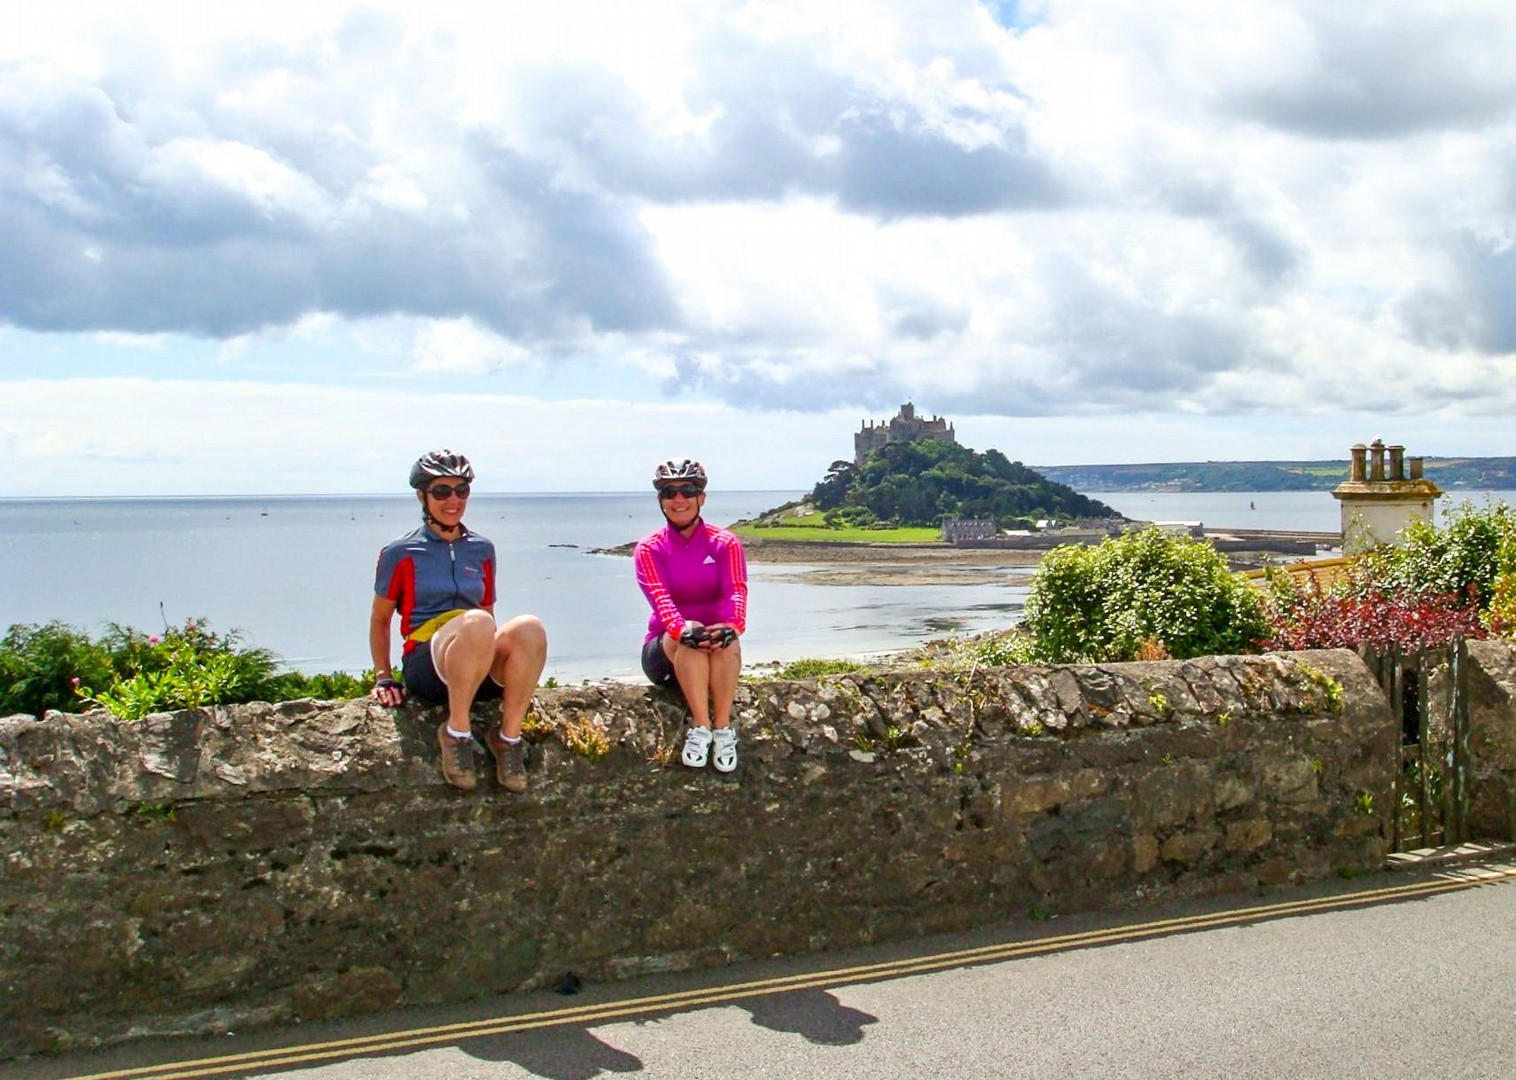 guided-cycling-holiday-uk-lands-end-to-john-ogroats-britain-saddle-skedaddle.jpg - UK - Land's End to John O'Groats Explorer (22 days) - Guided Cycling Holiday - Road Cycling